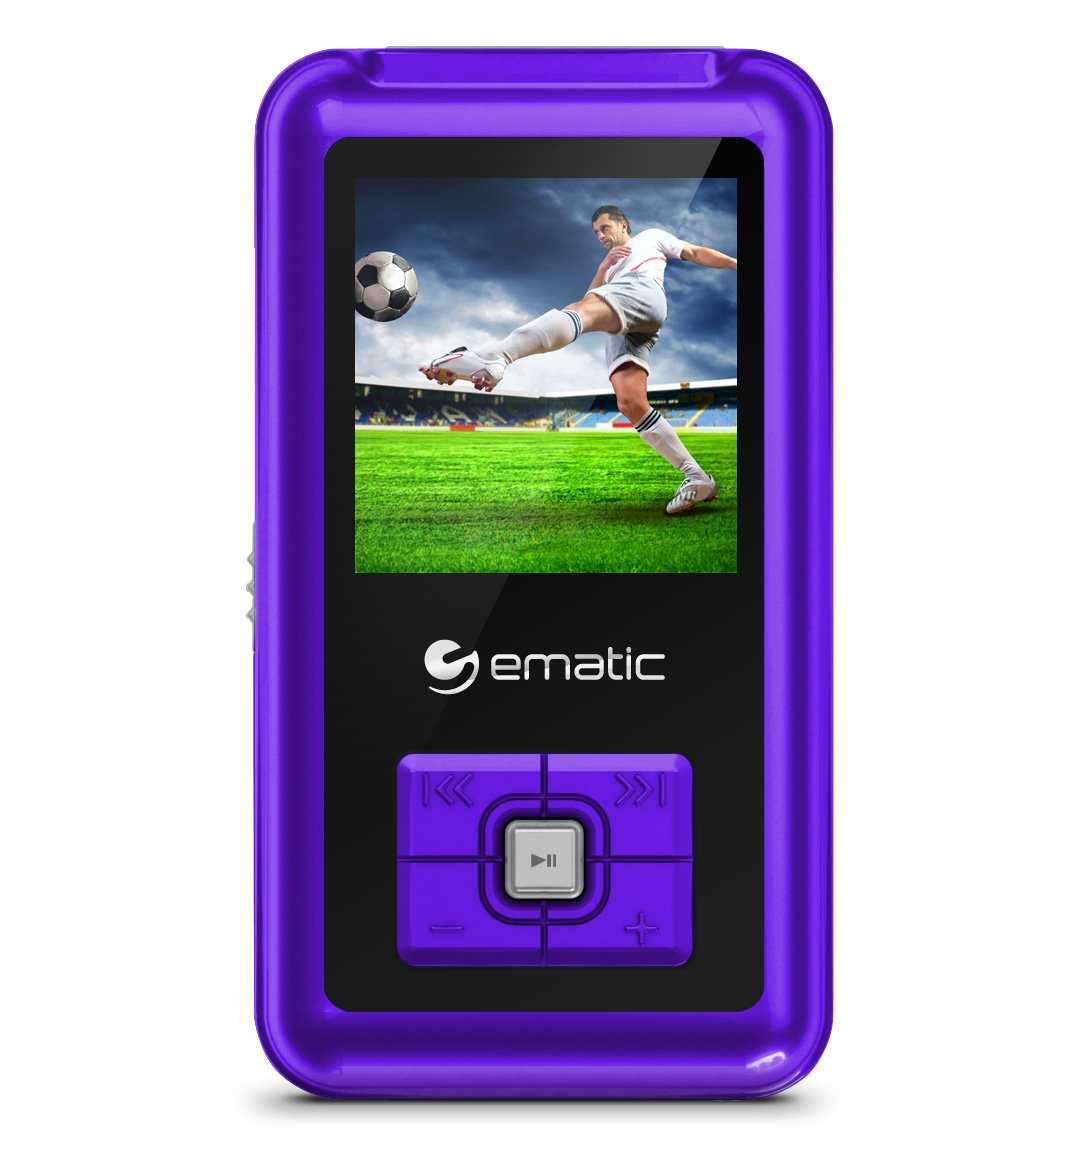 "Ematic Em208vid 8 Gb Purple Flash Portable Media Player - Photo Viewer, Video Player, Audio Player, Fm Tuner, Voice Recorder, E-book, Fm Recorder - 1.5"" - Usb - Headphone (em208vidpr)"